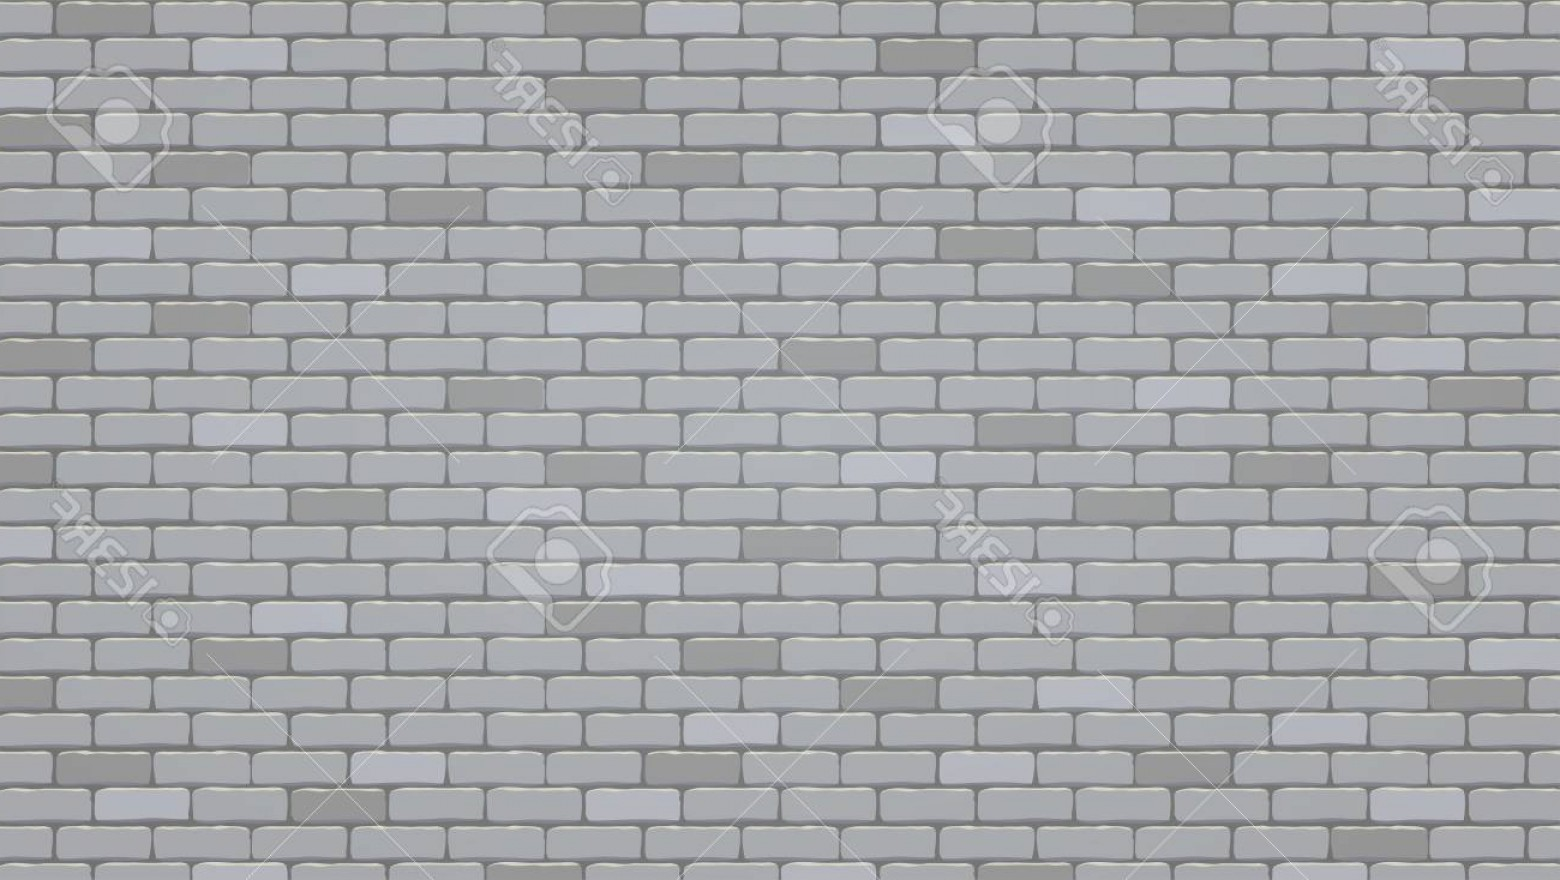 Wall Background Vector: Photostock Vector Brick Wall Background Vector Pattern Illustration Texture Of Brick Wall